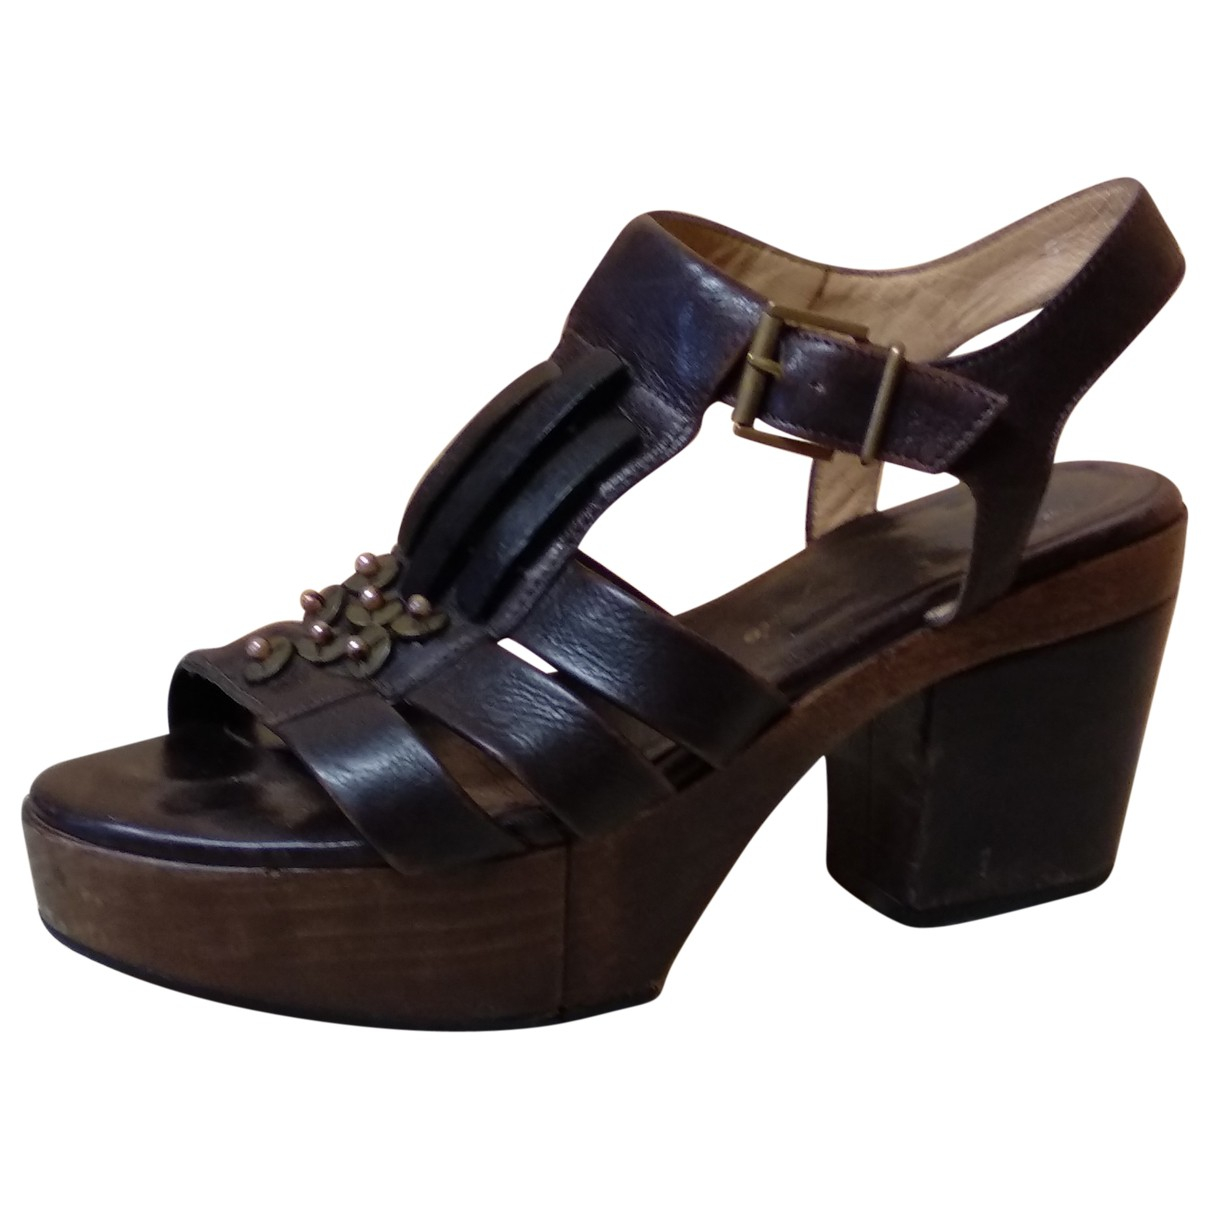 Robert Clergerie \N Brown Leather Sandals for Women 37 EU